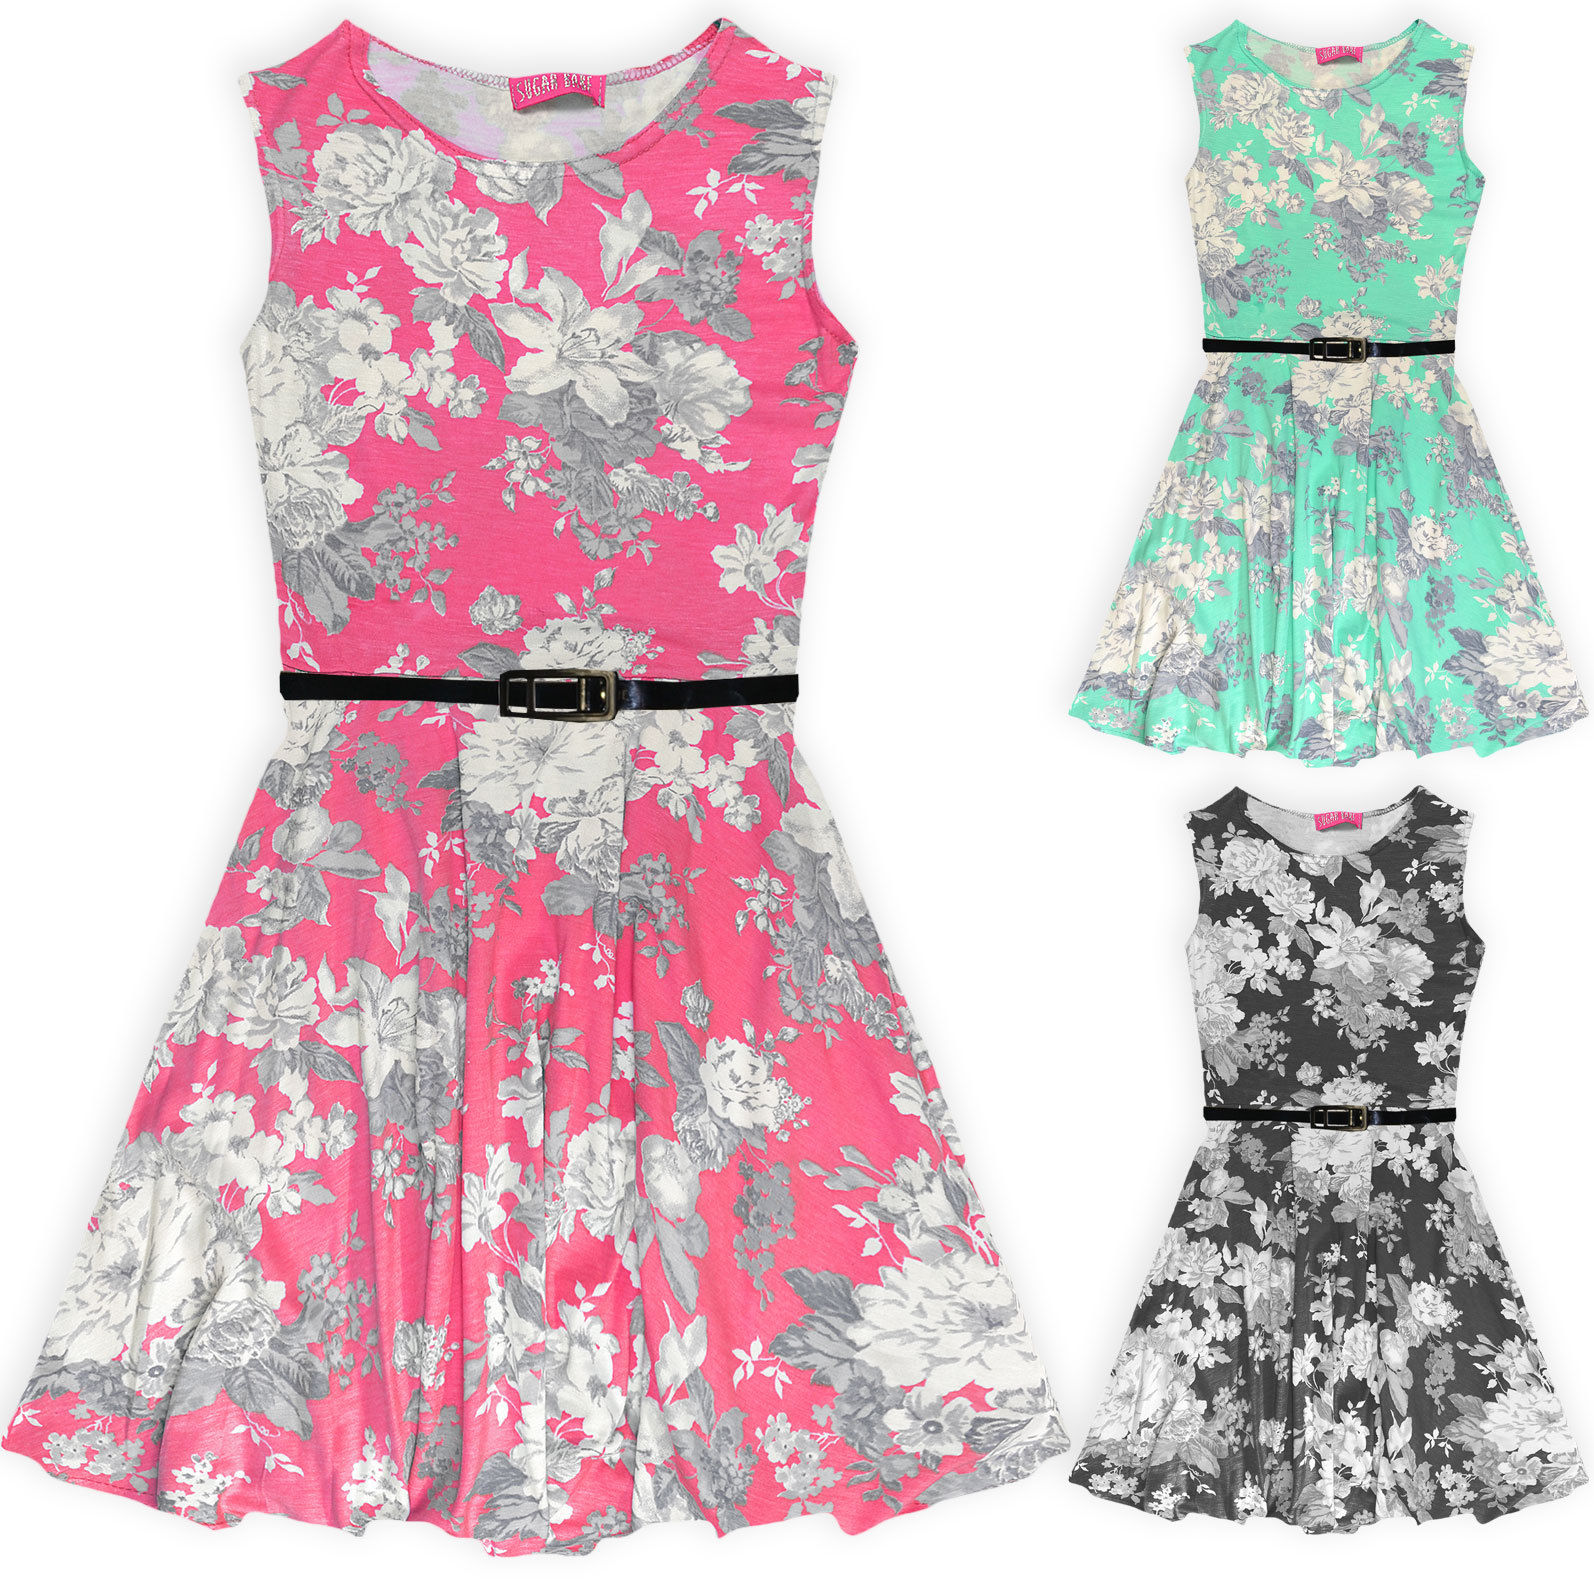 Shop girls' skater dresses in a variety of sizes and styles at Burlington. Great prices and free shipping available.